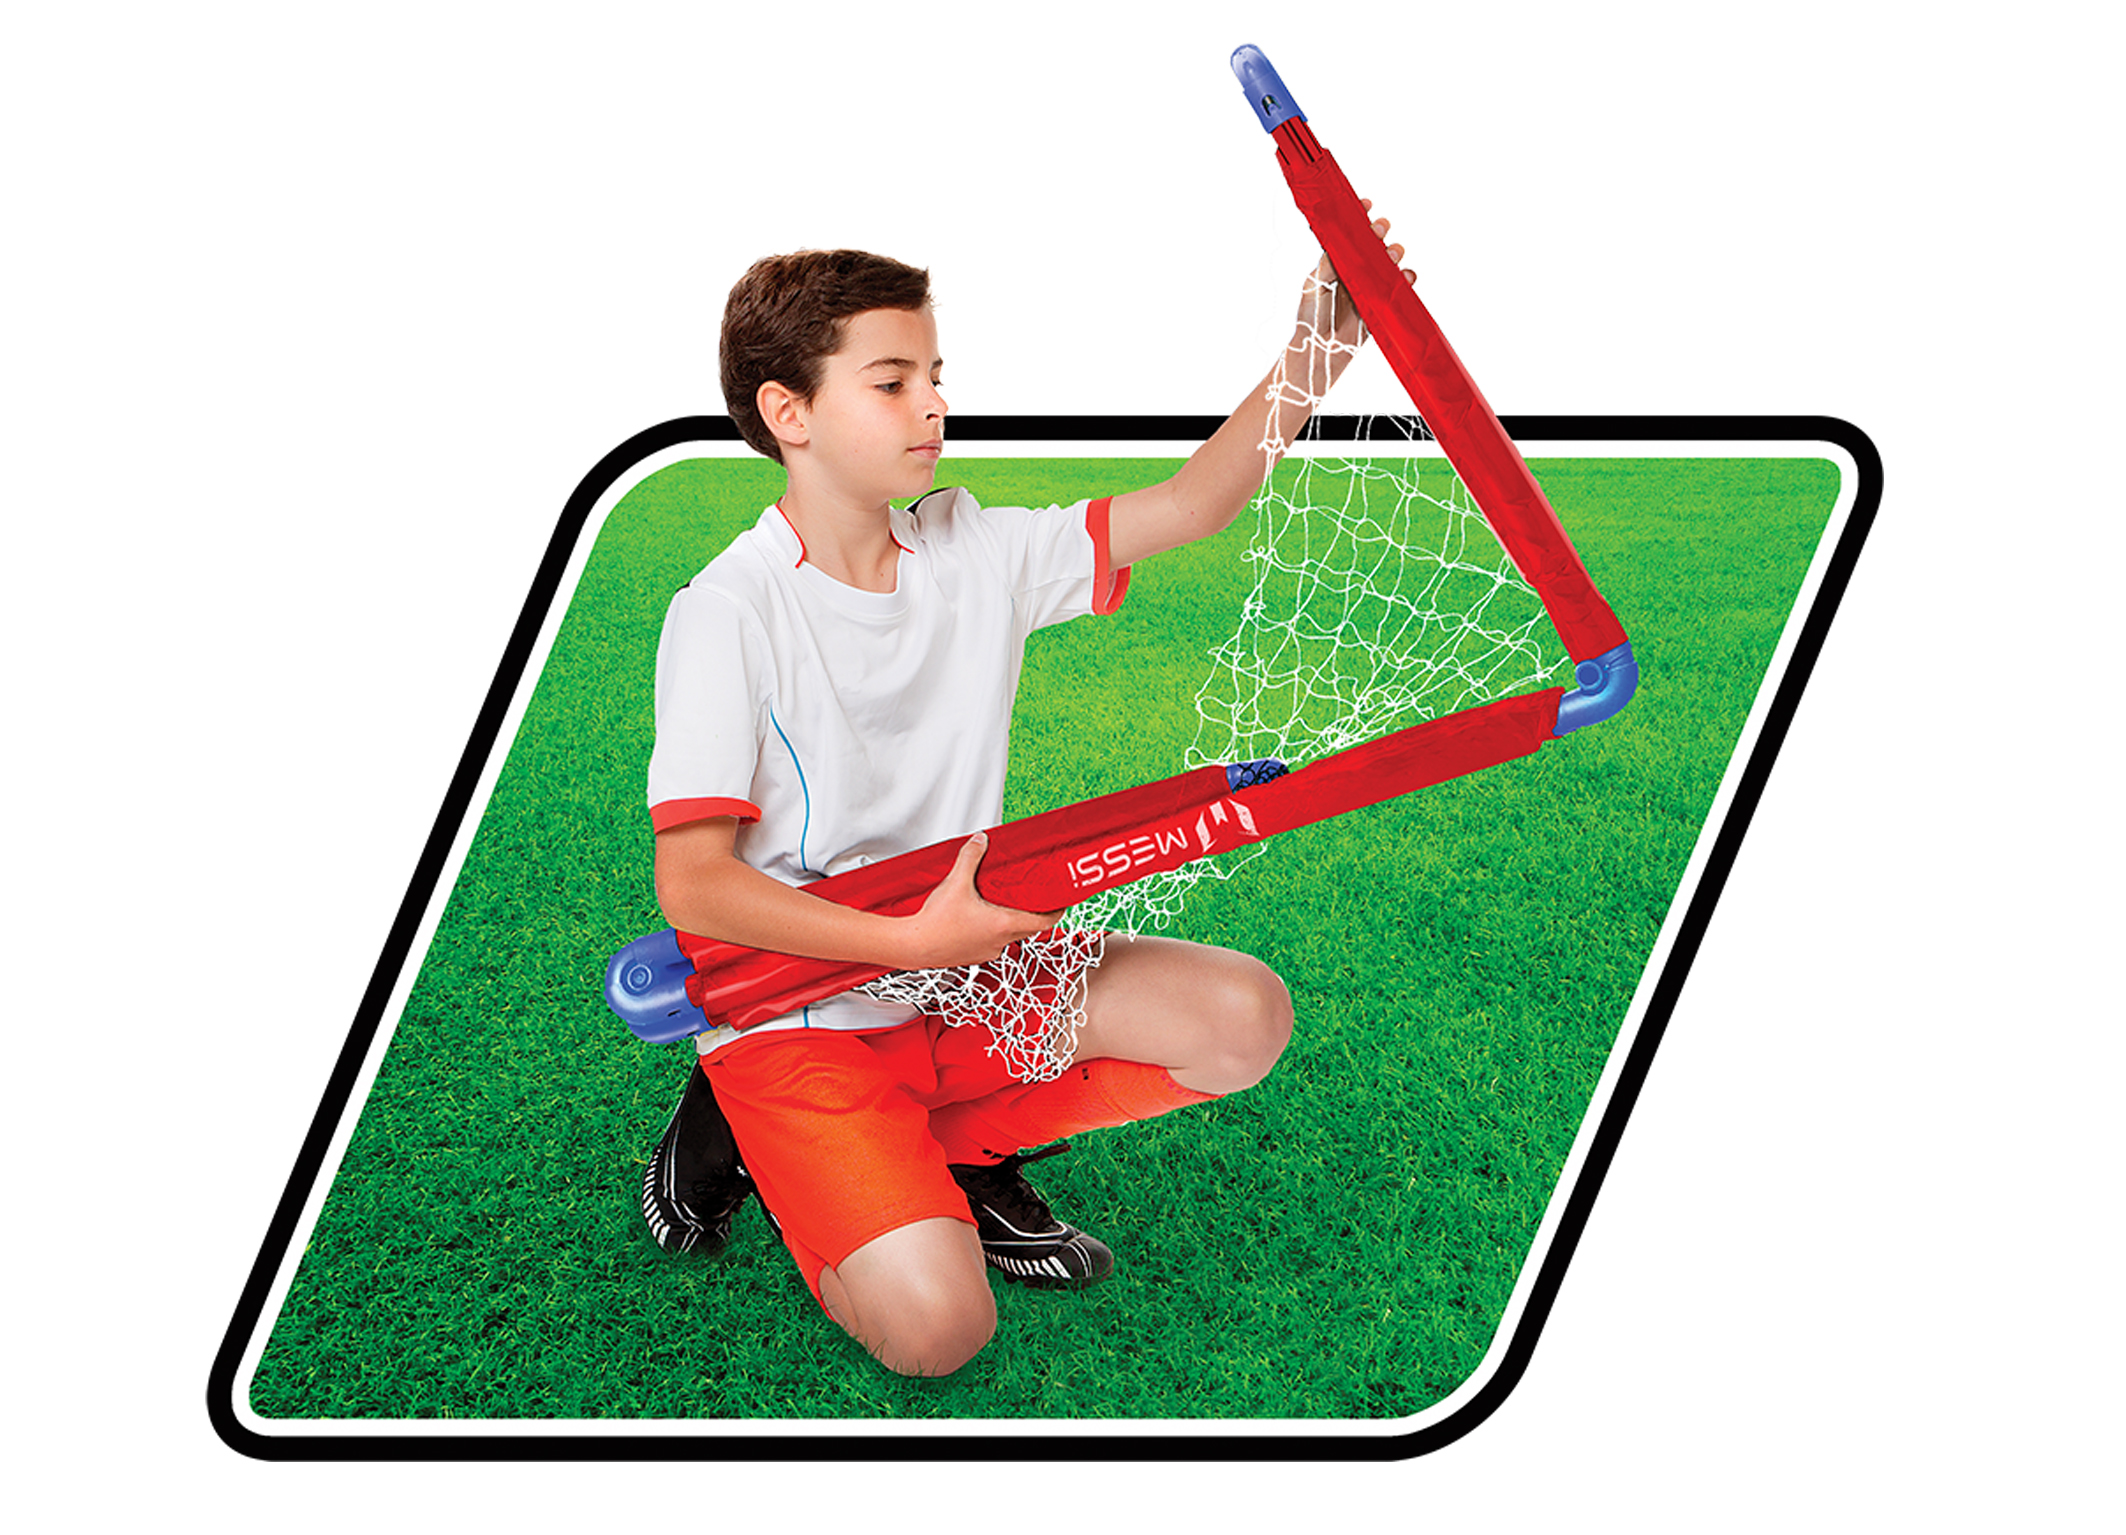 a793b0bd9 FOLDABLE GOAL LARGE - Messi Training System